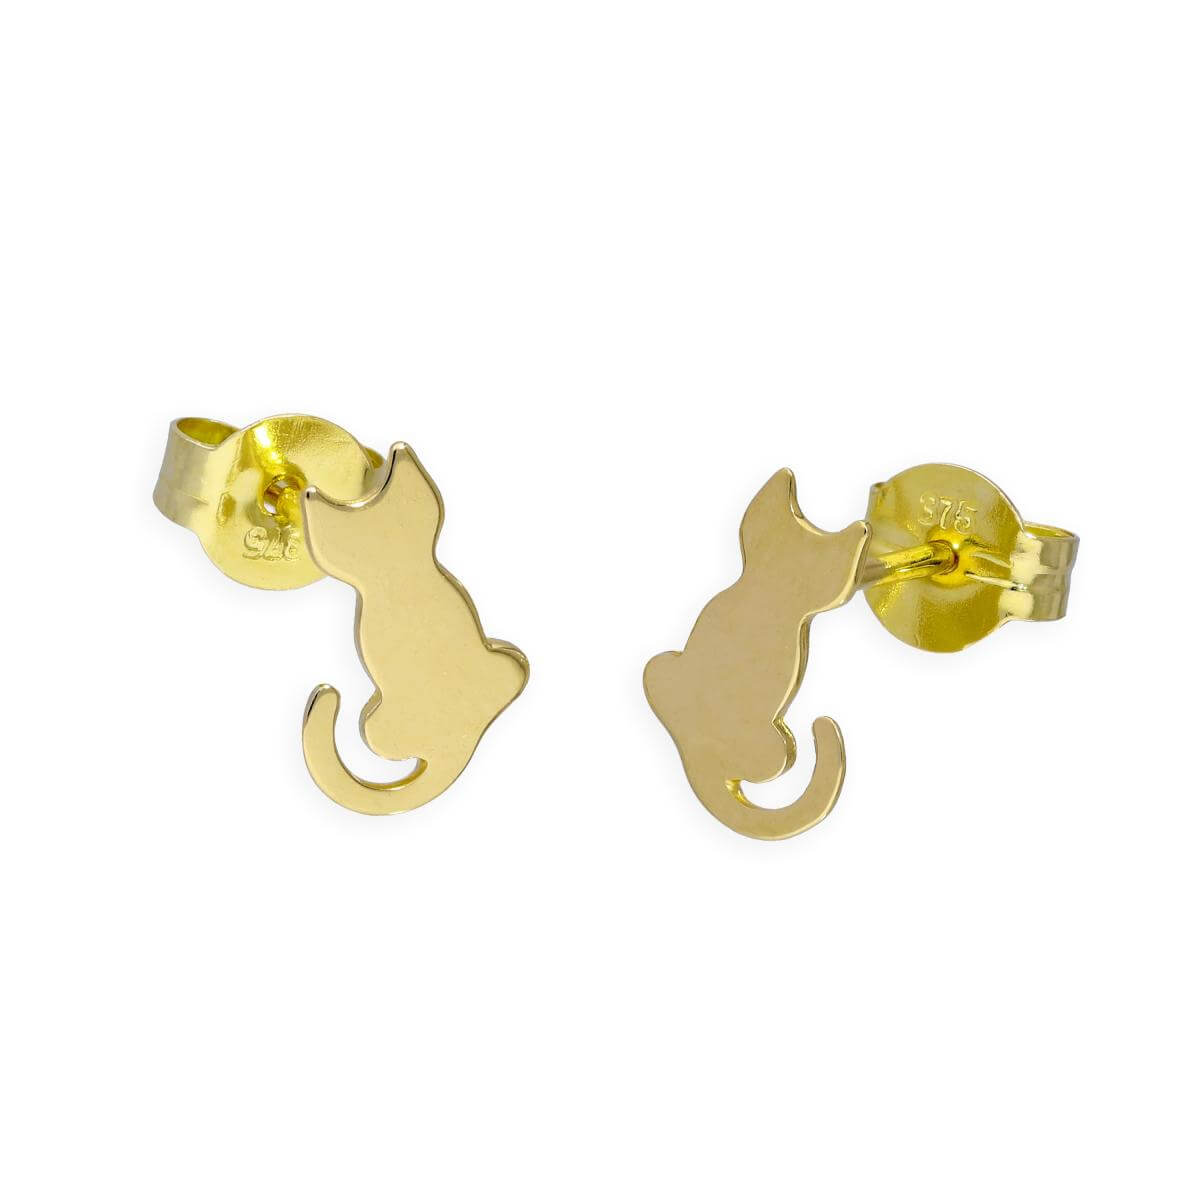 9ct Gold Sitting Cat Stud Earrings